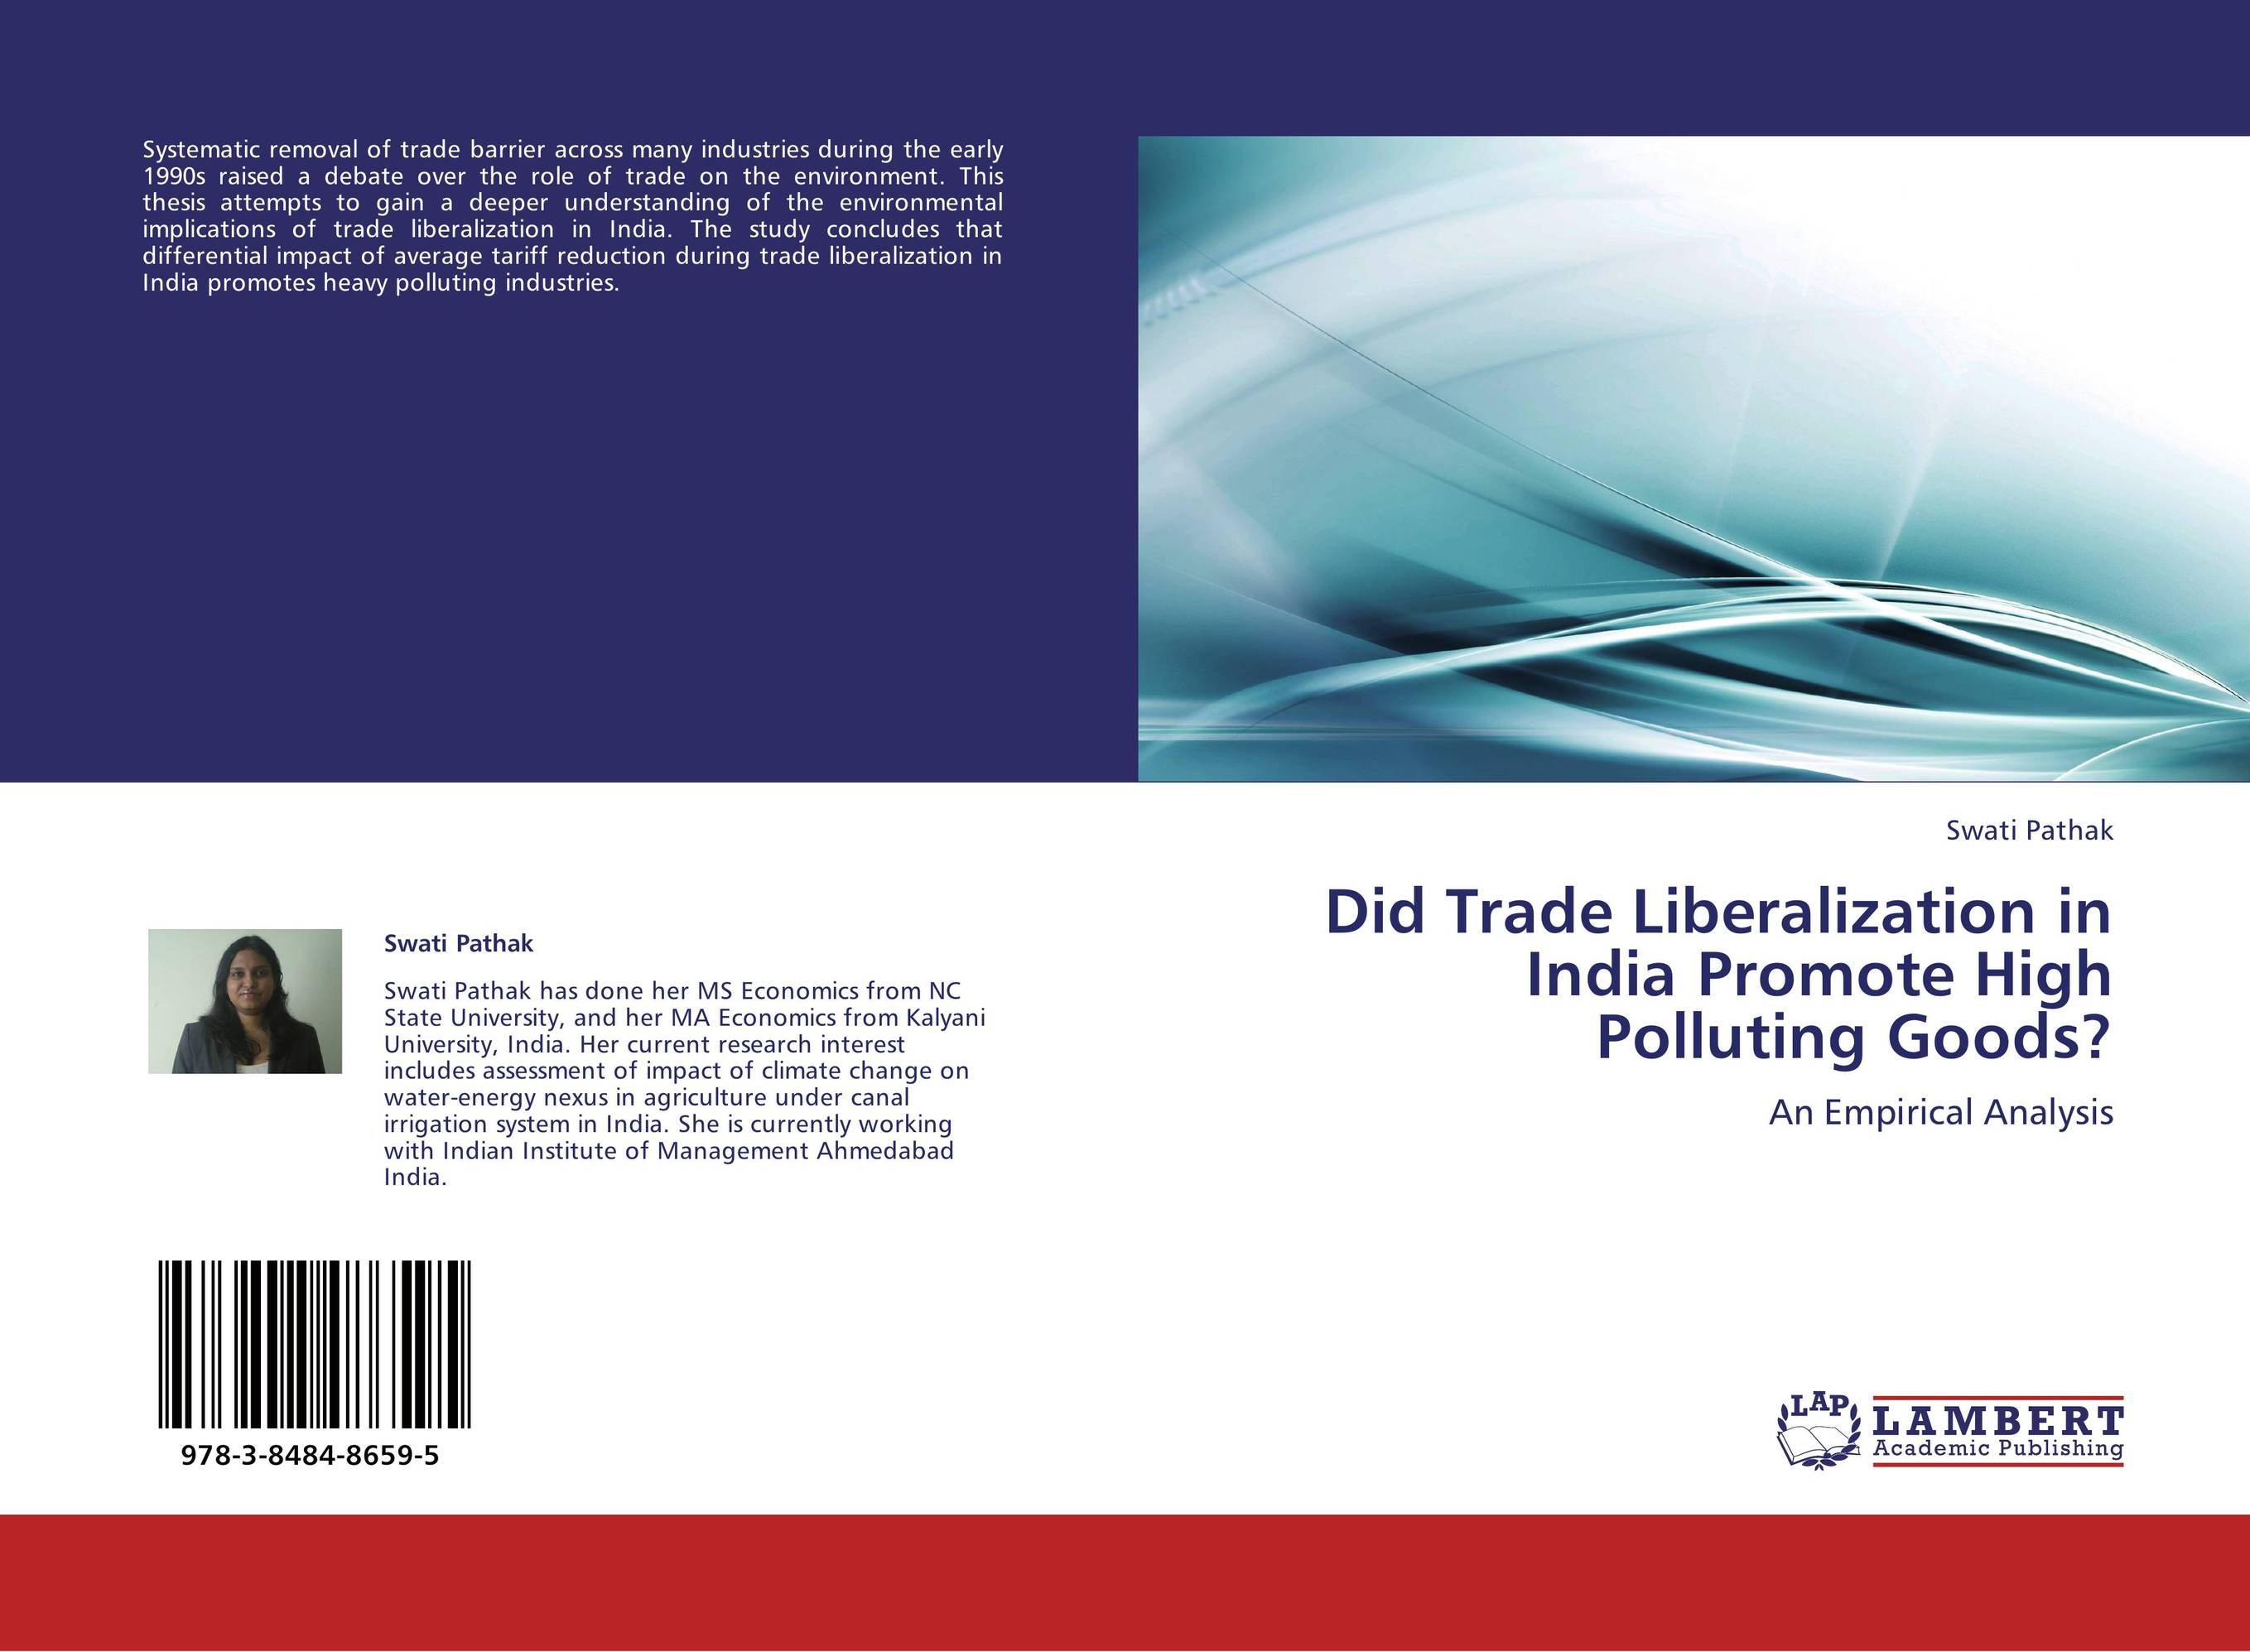 the impact of liberalisation on the peasant movement in india Trade liberalization through free trade agreements (ftas): impacts on agriculture and people in india introduction over the past two decades, an increasing number of countries have been following a policy of ever-progressing trade liberalization.